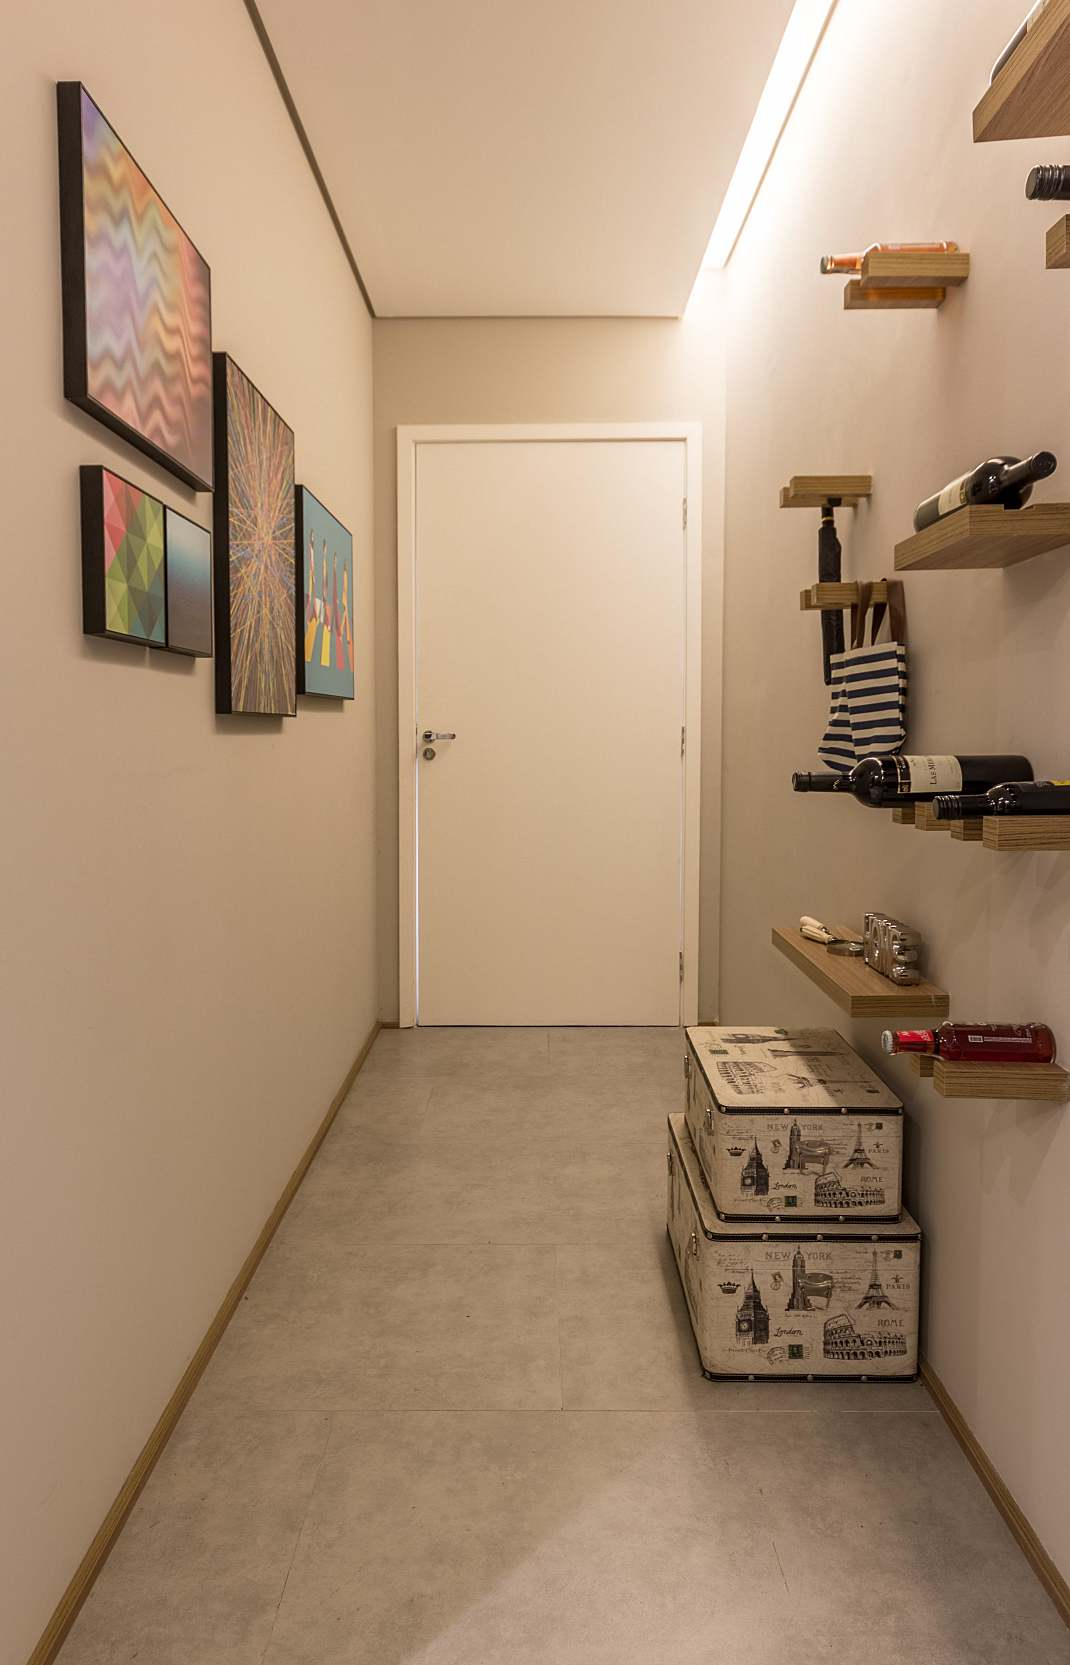 DECORACAO-DE-APARTAMENTOS-PEQUENOS-31-out-201919